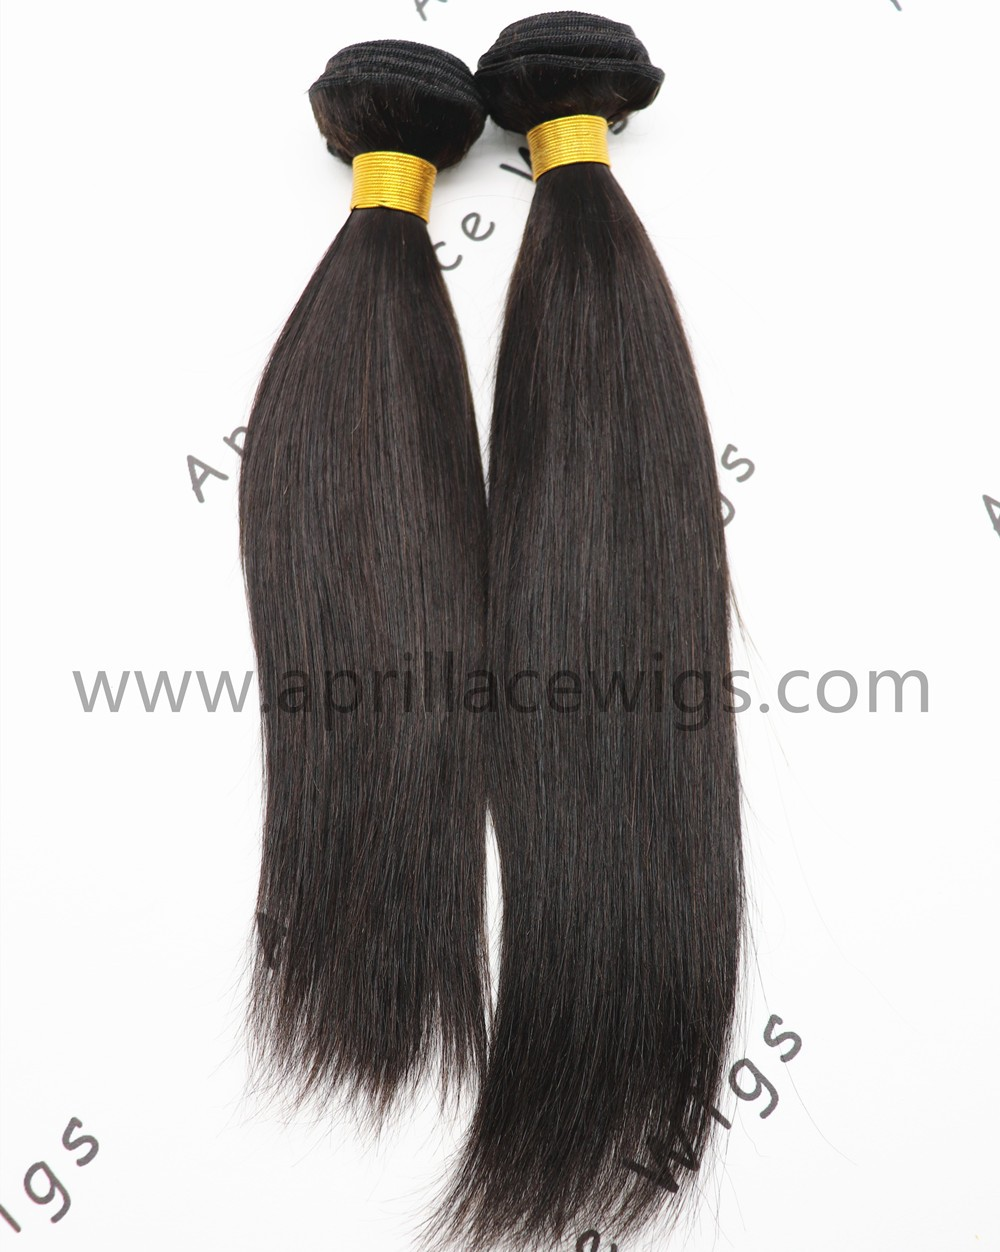 Brazilian virgin straight hair wefts, weaving, extensions